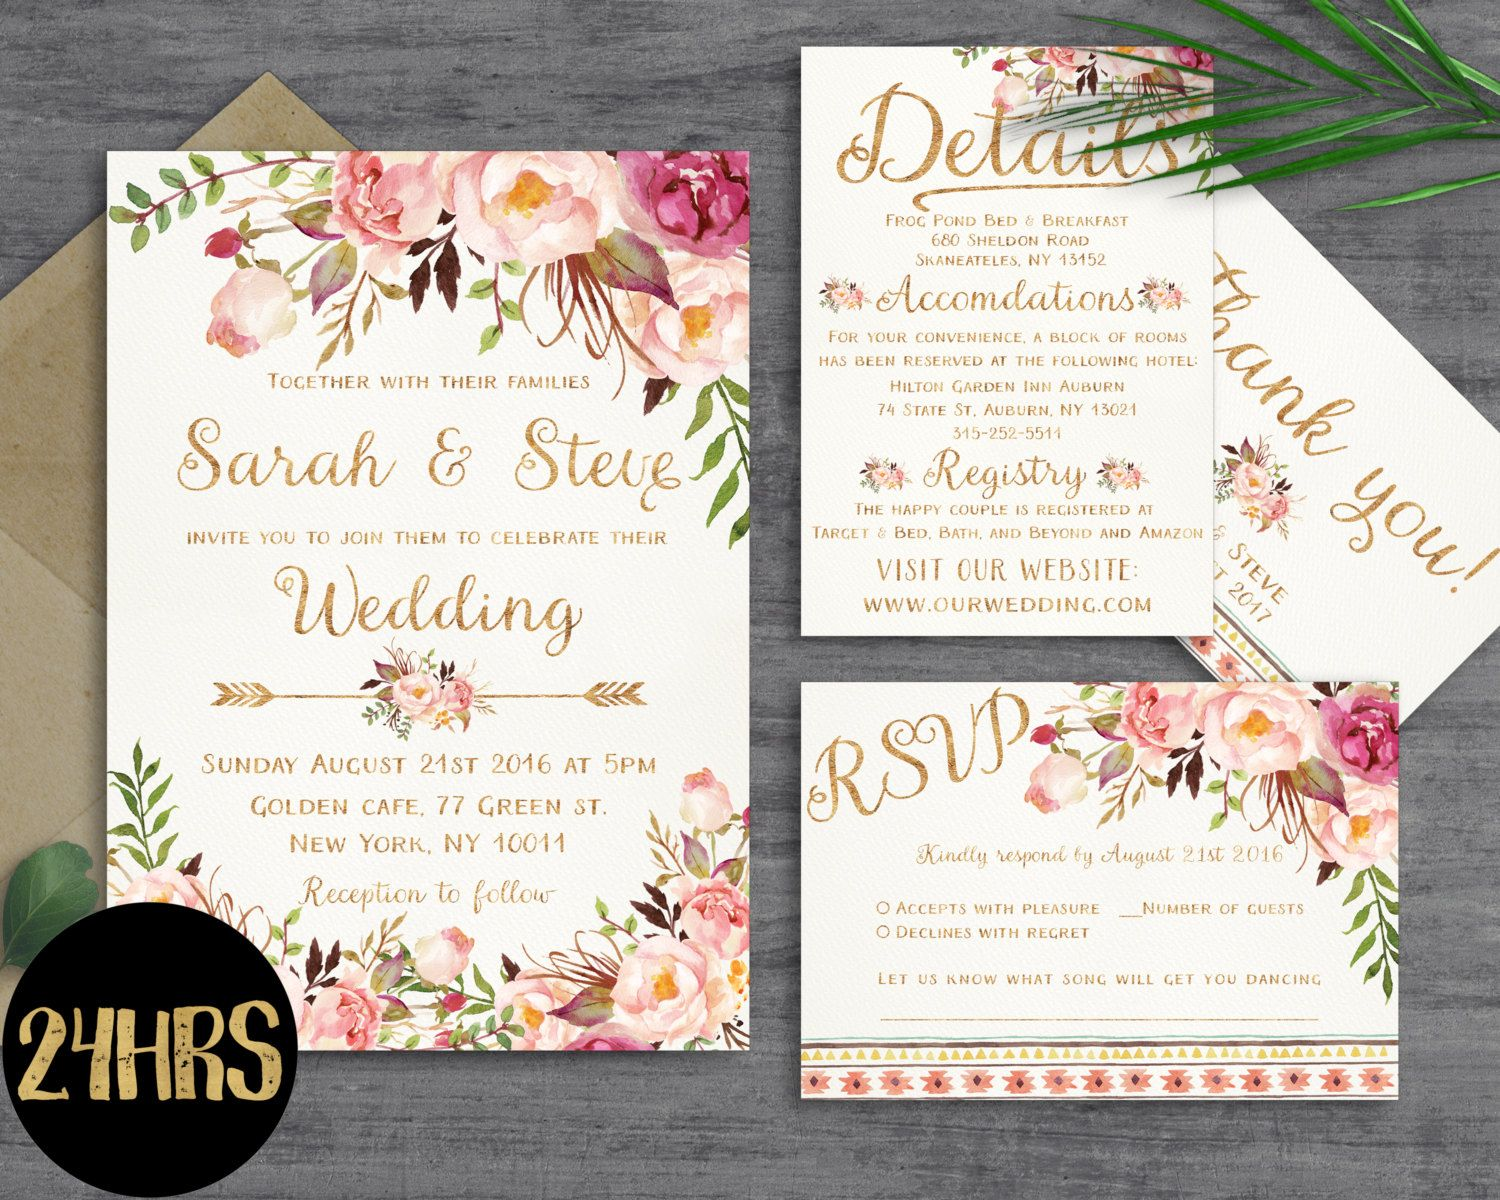 Floral Wedding Invitation Template Wedding Invitation Printable - Wedding invitation templates: template for wedding invitations